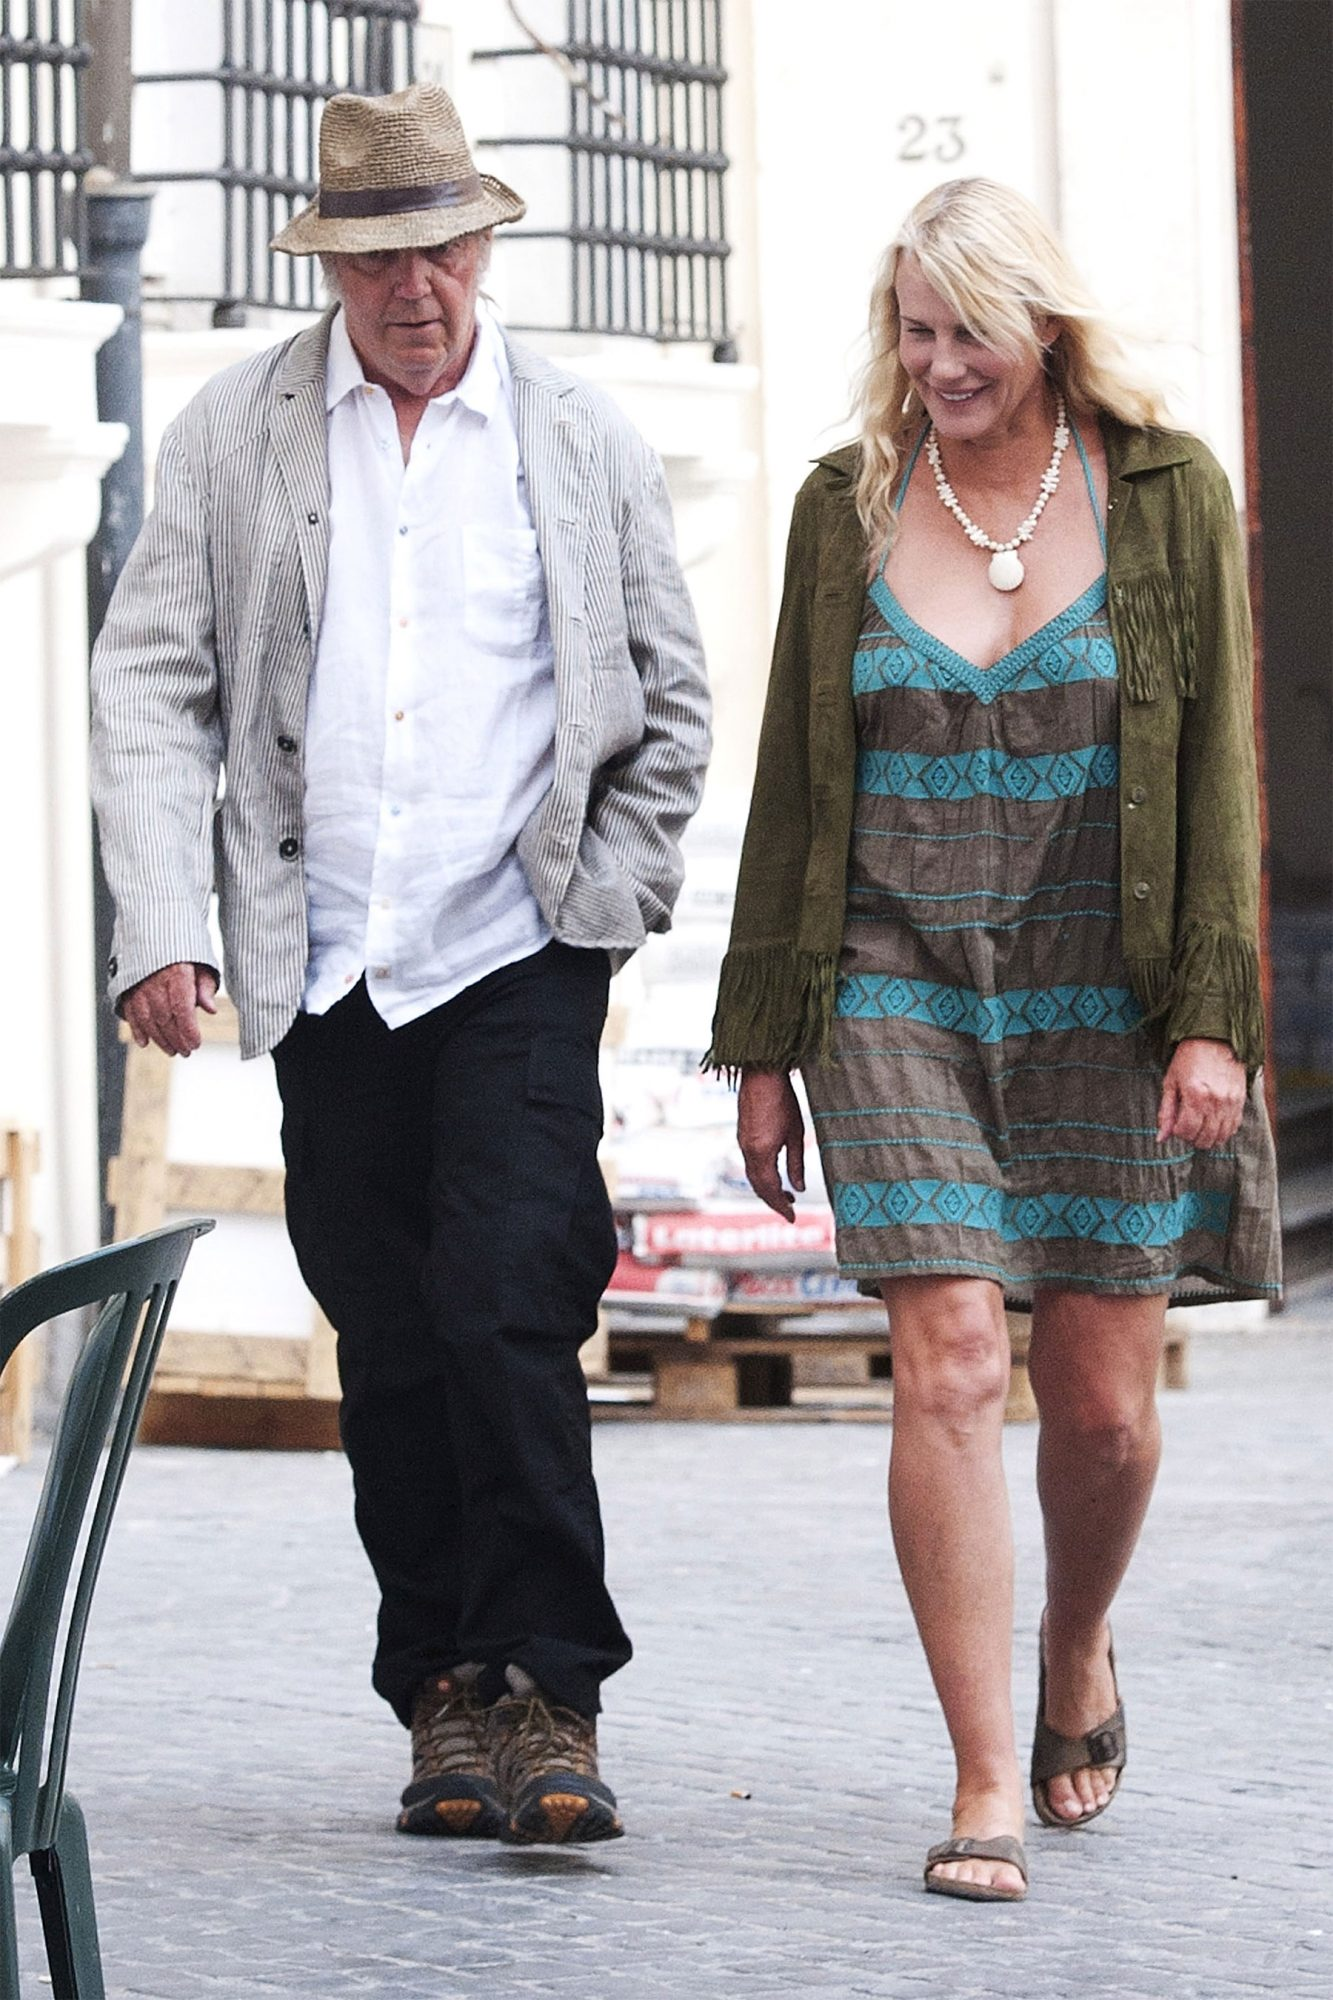 Rome Celebrity Sightings Daryl Hannah, Neil Young  June 27th, 2015